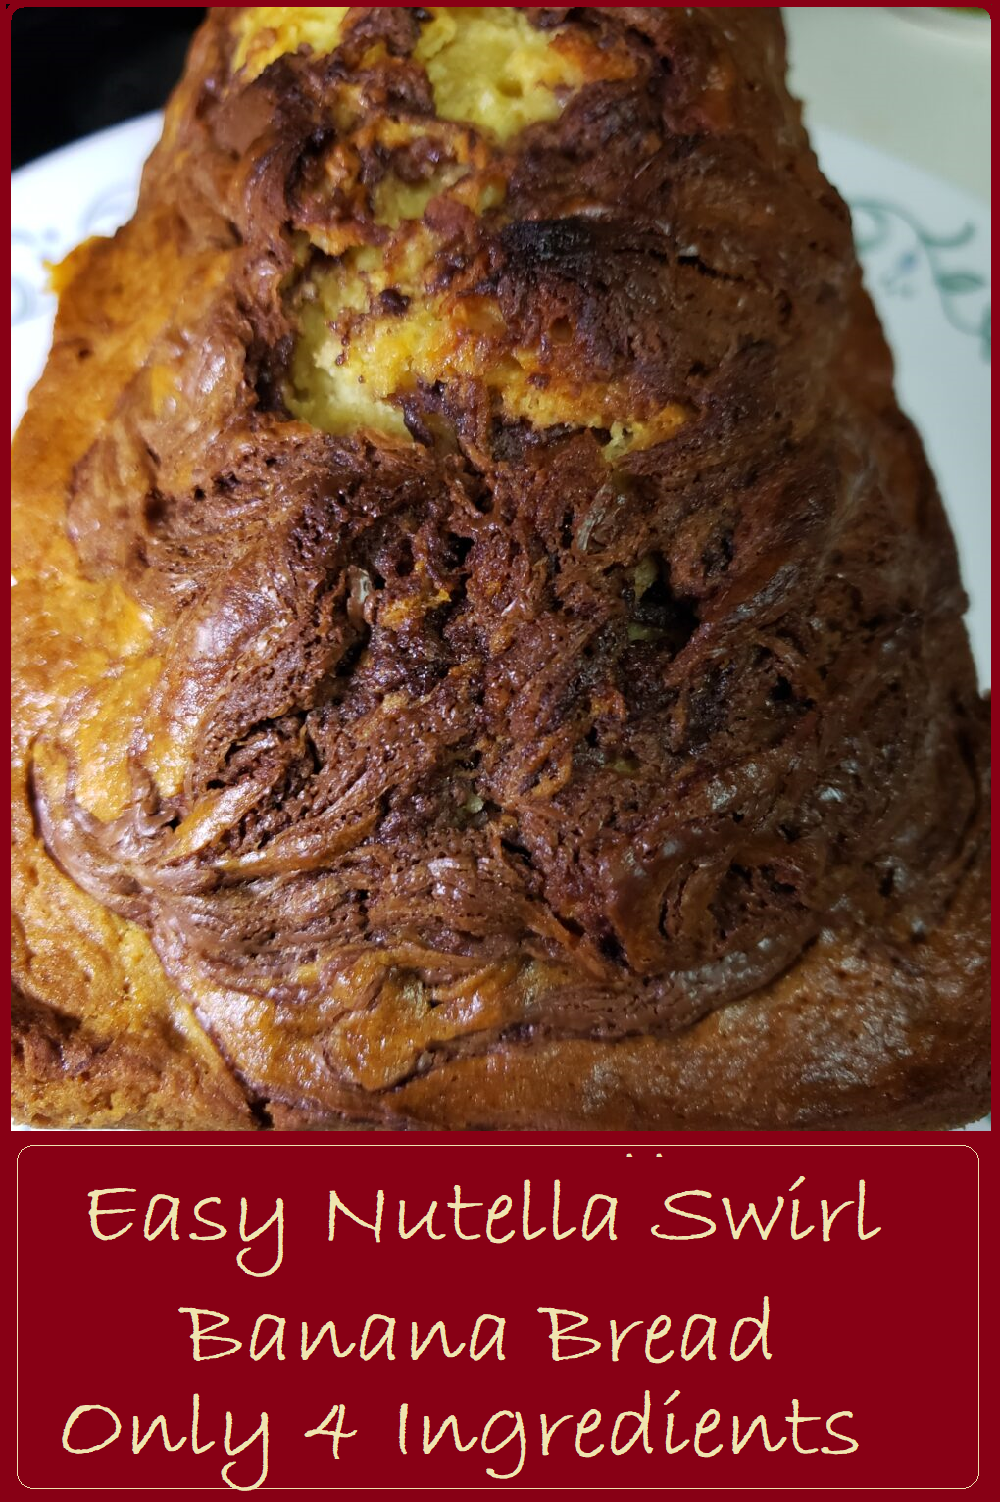 Top view of a loaf oa Nutella Swirl Bread. The loaf along the top has visible swirls of chocolate, and is cracked.